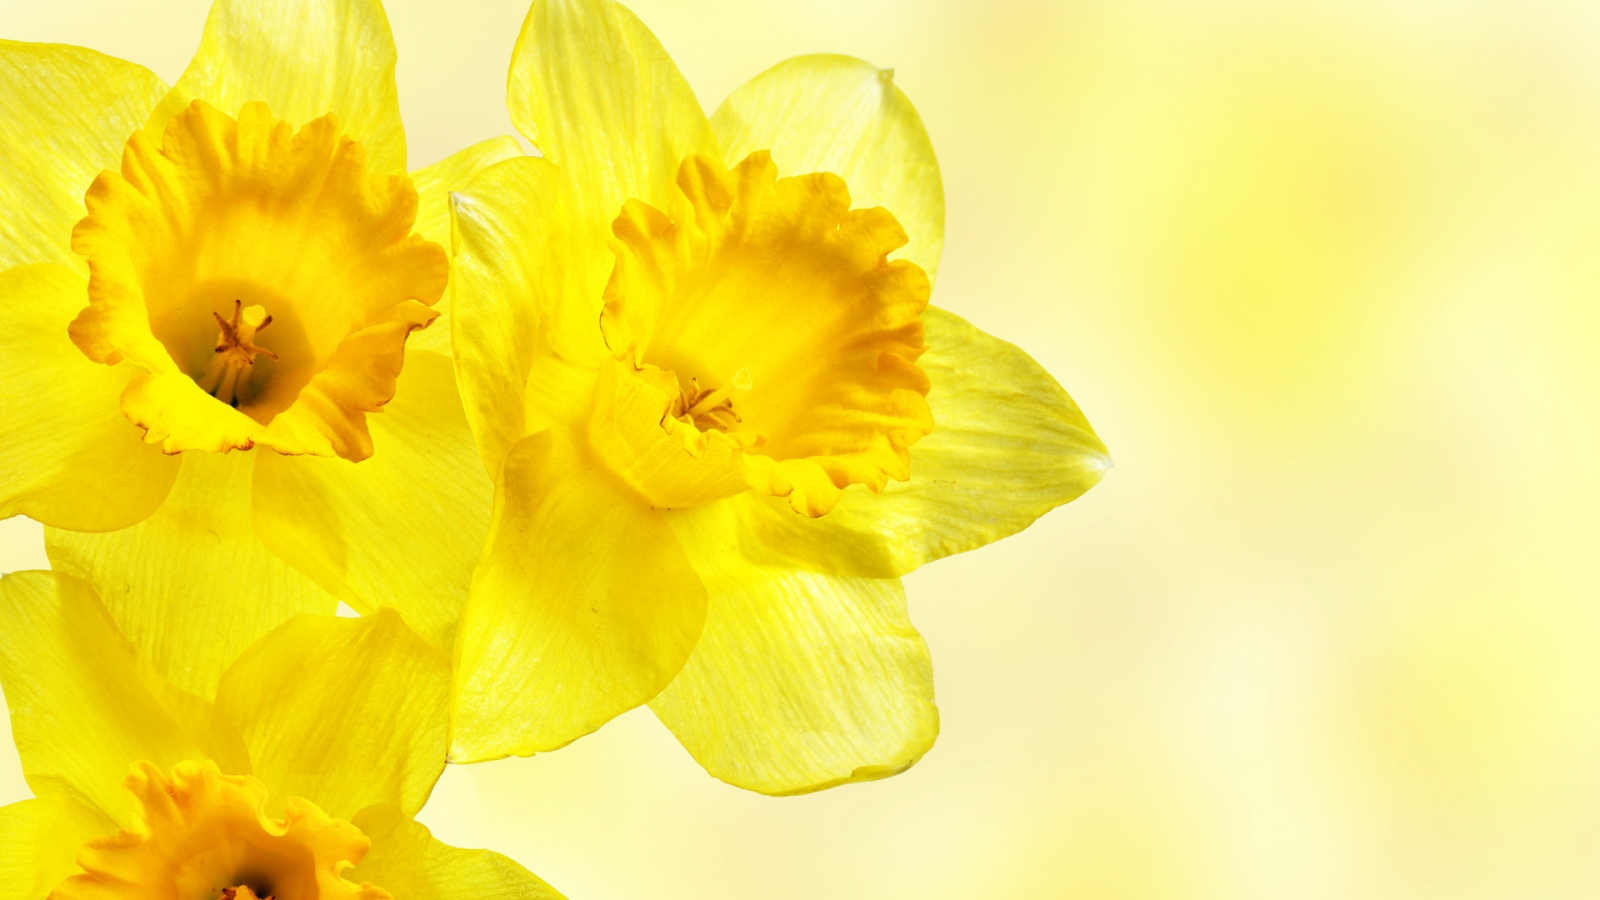 Pictures of yellow flowers 8 background hdflowerwallpaper pictures of yellow flowers hd wallpaper mightylinksfo